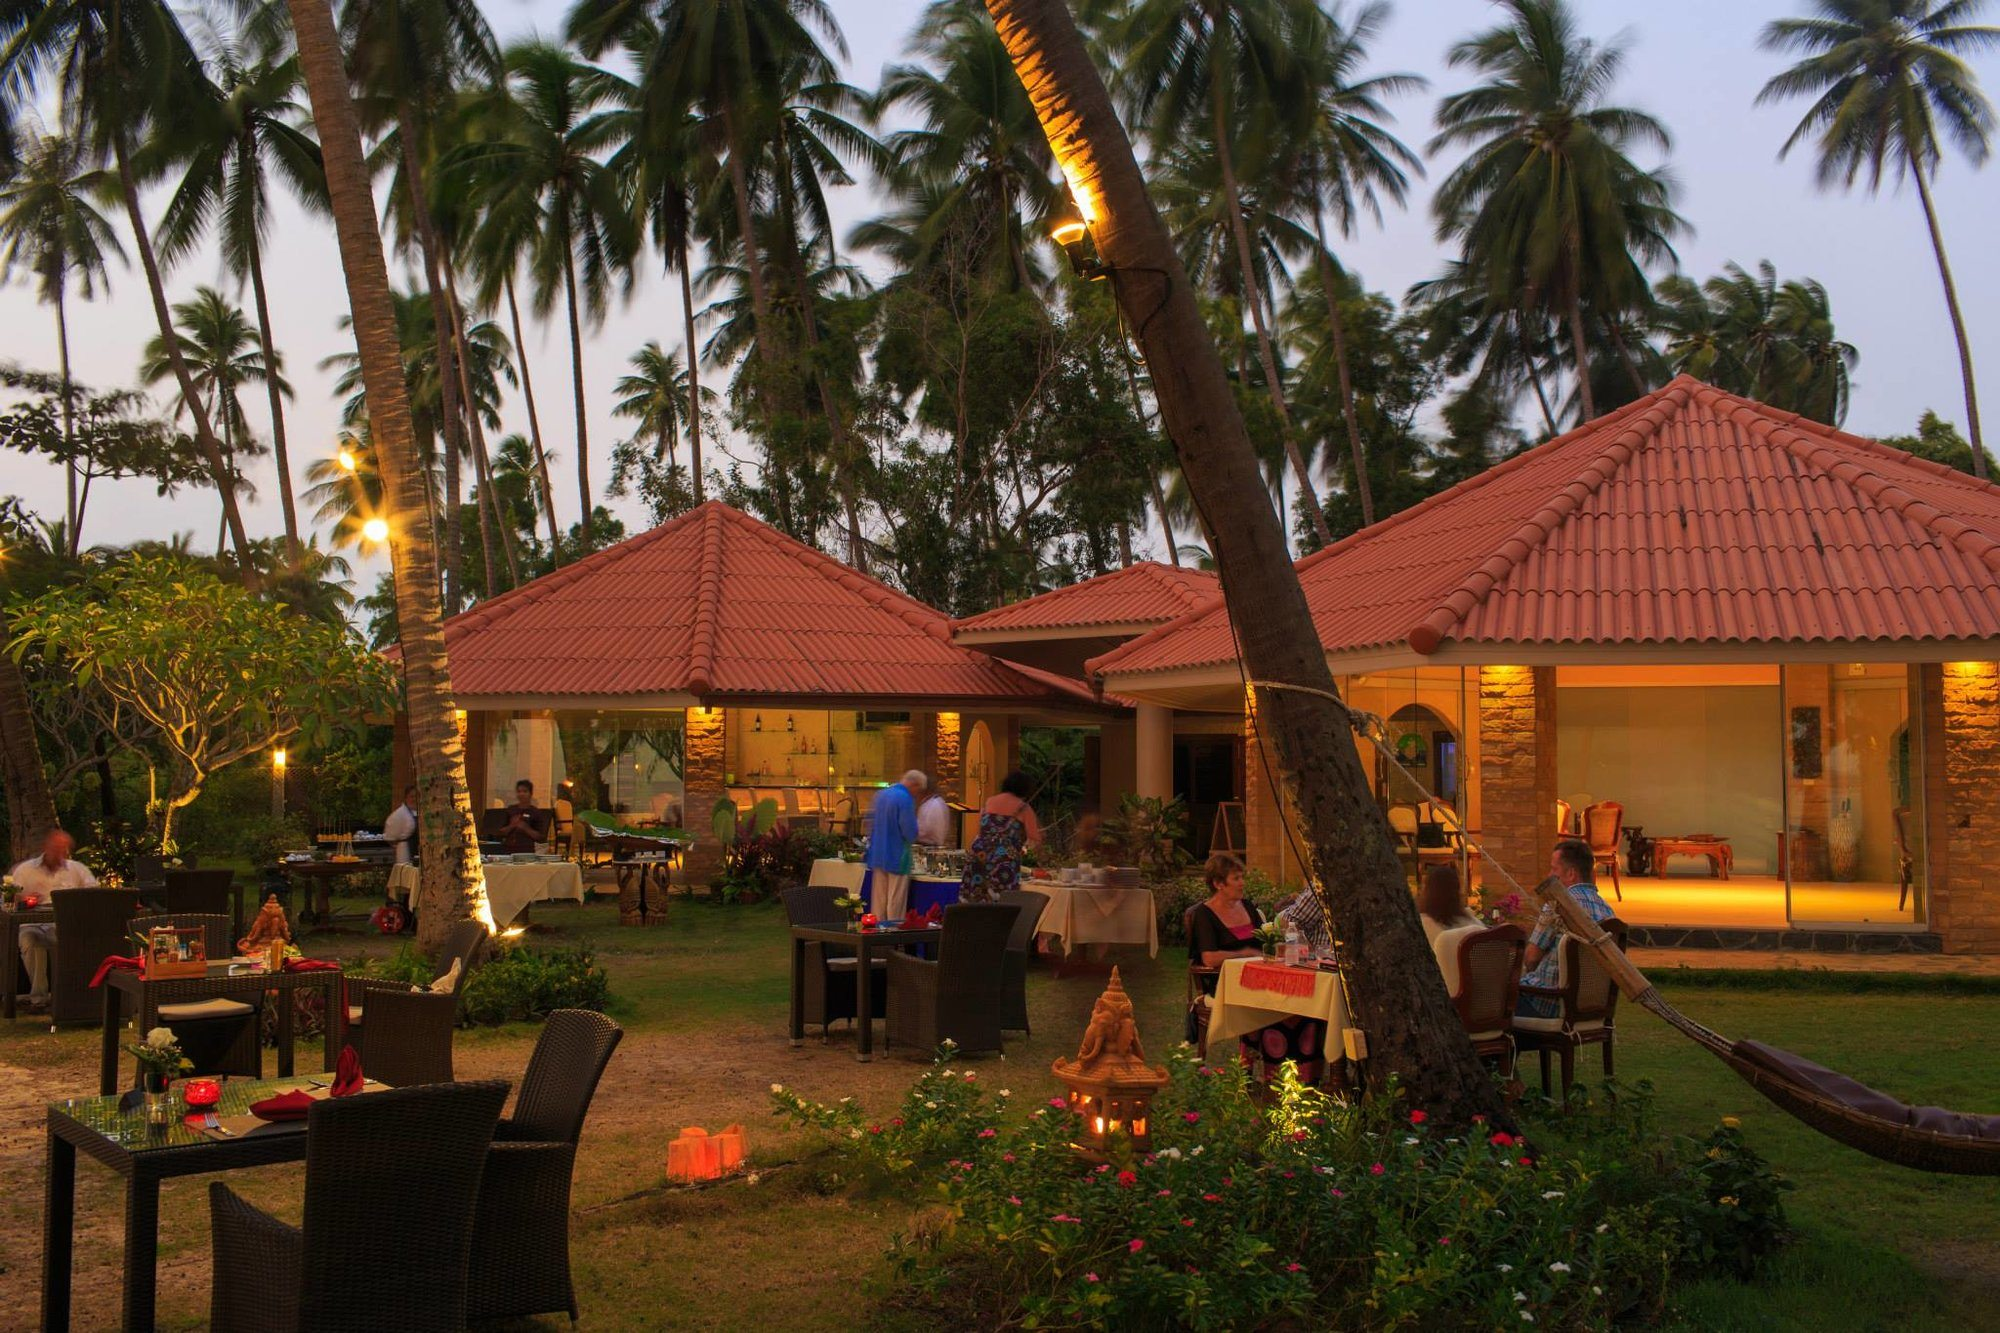 7 Restaurants You Need to Visit in Lipa Noi